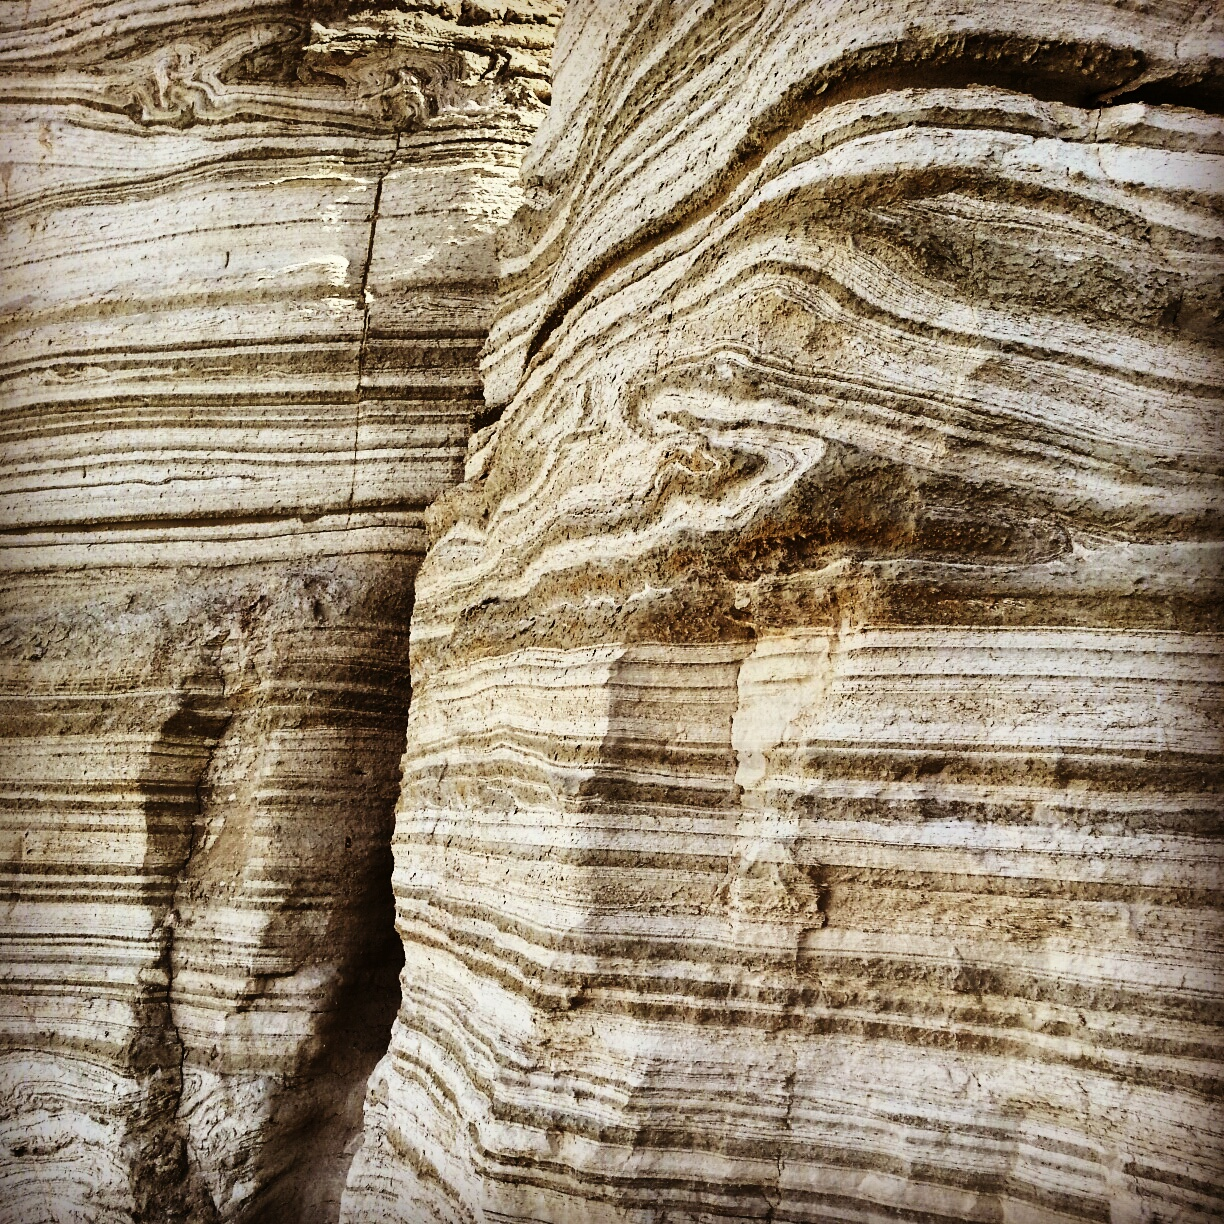 Layers of sedimentary rock in Nachal Peratzim